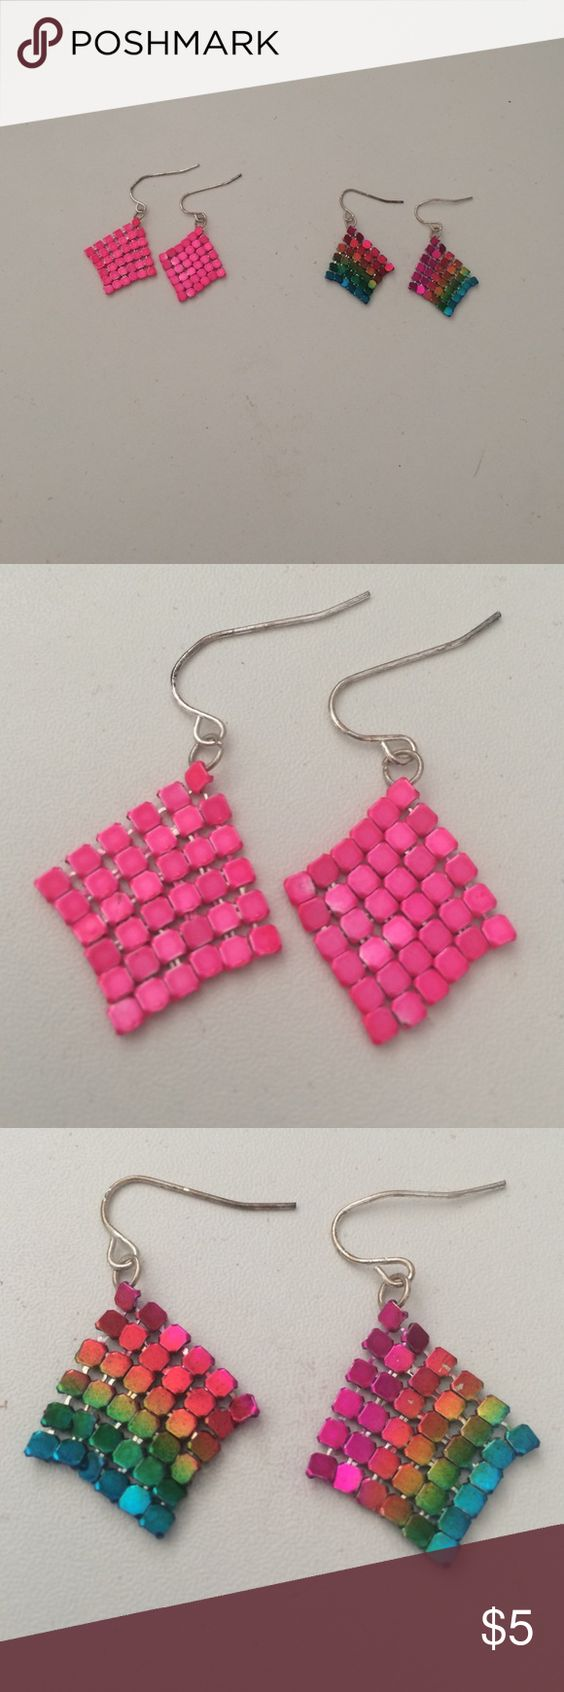 Earring bundle Make an offer!!! Have had a lot of use! Justice Jewelry Earrings